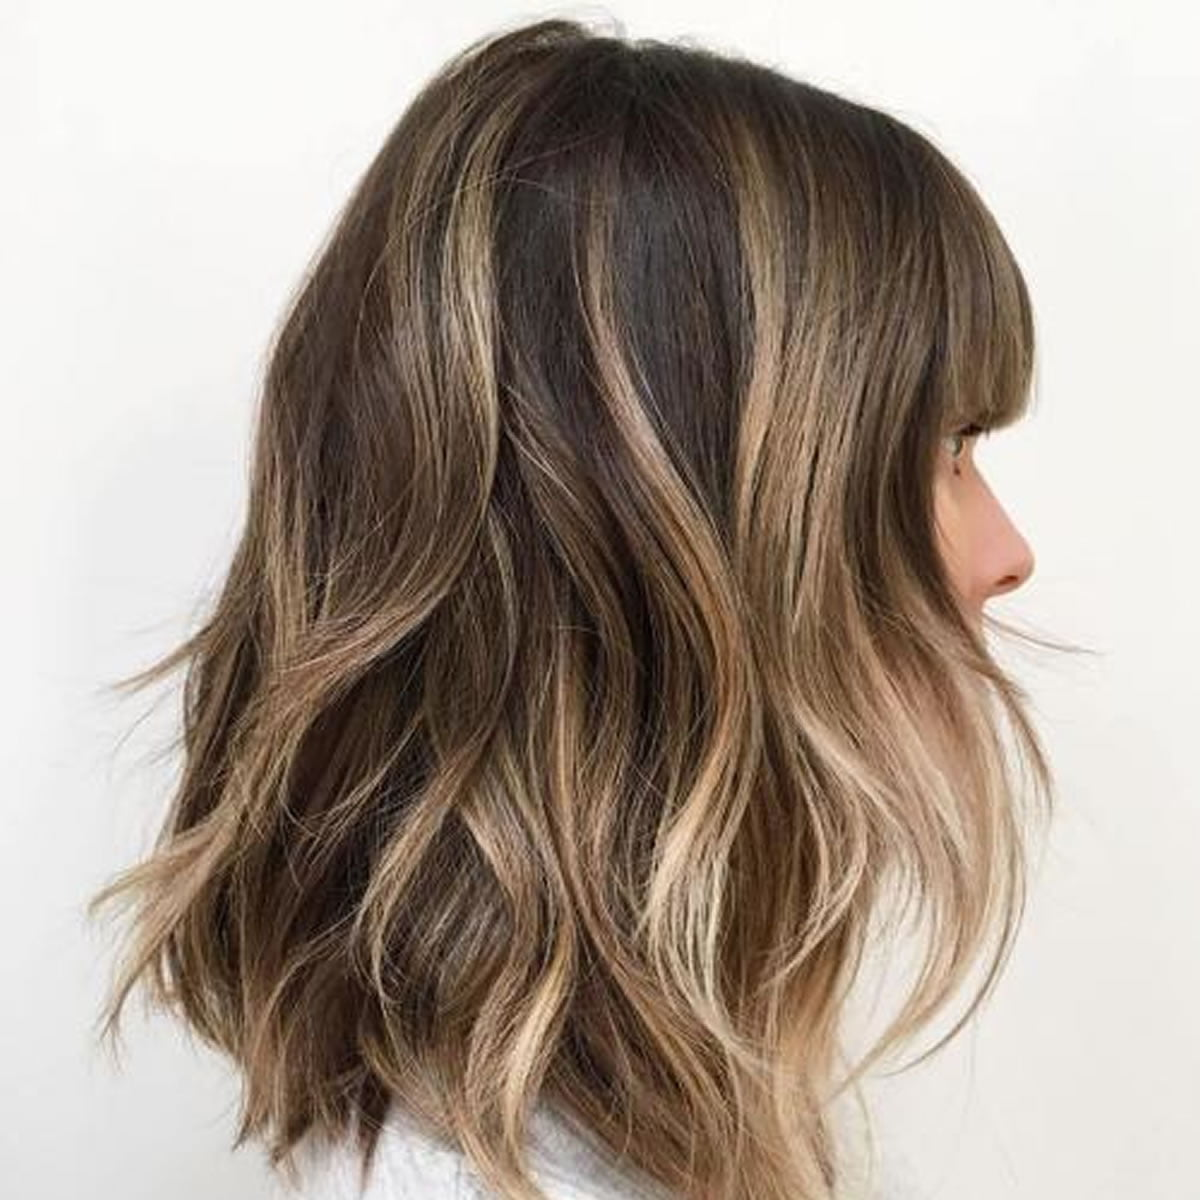 Images Of Long Bob Hairstyles 2018 Hairstyles